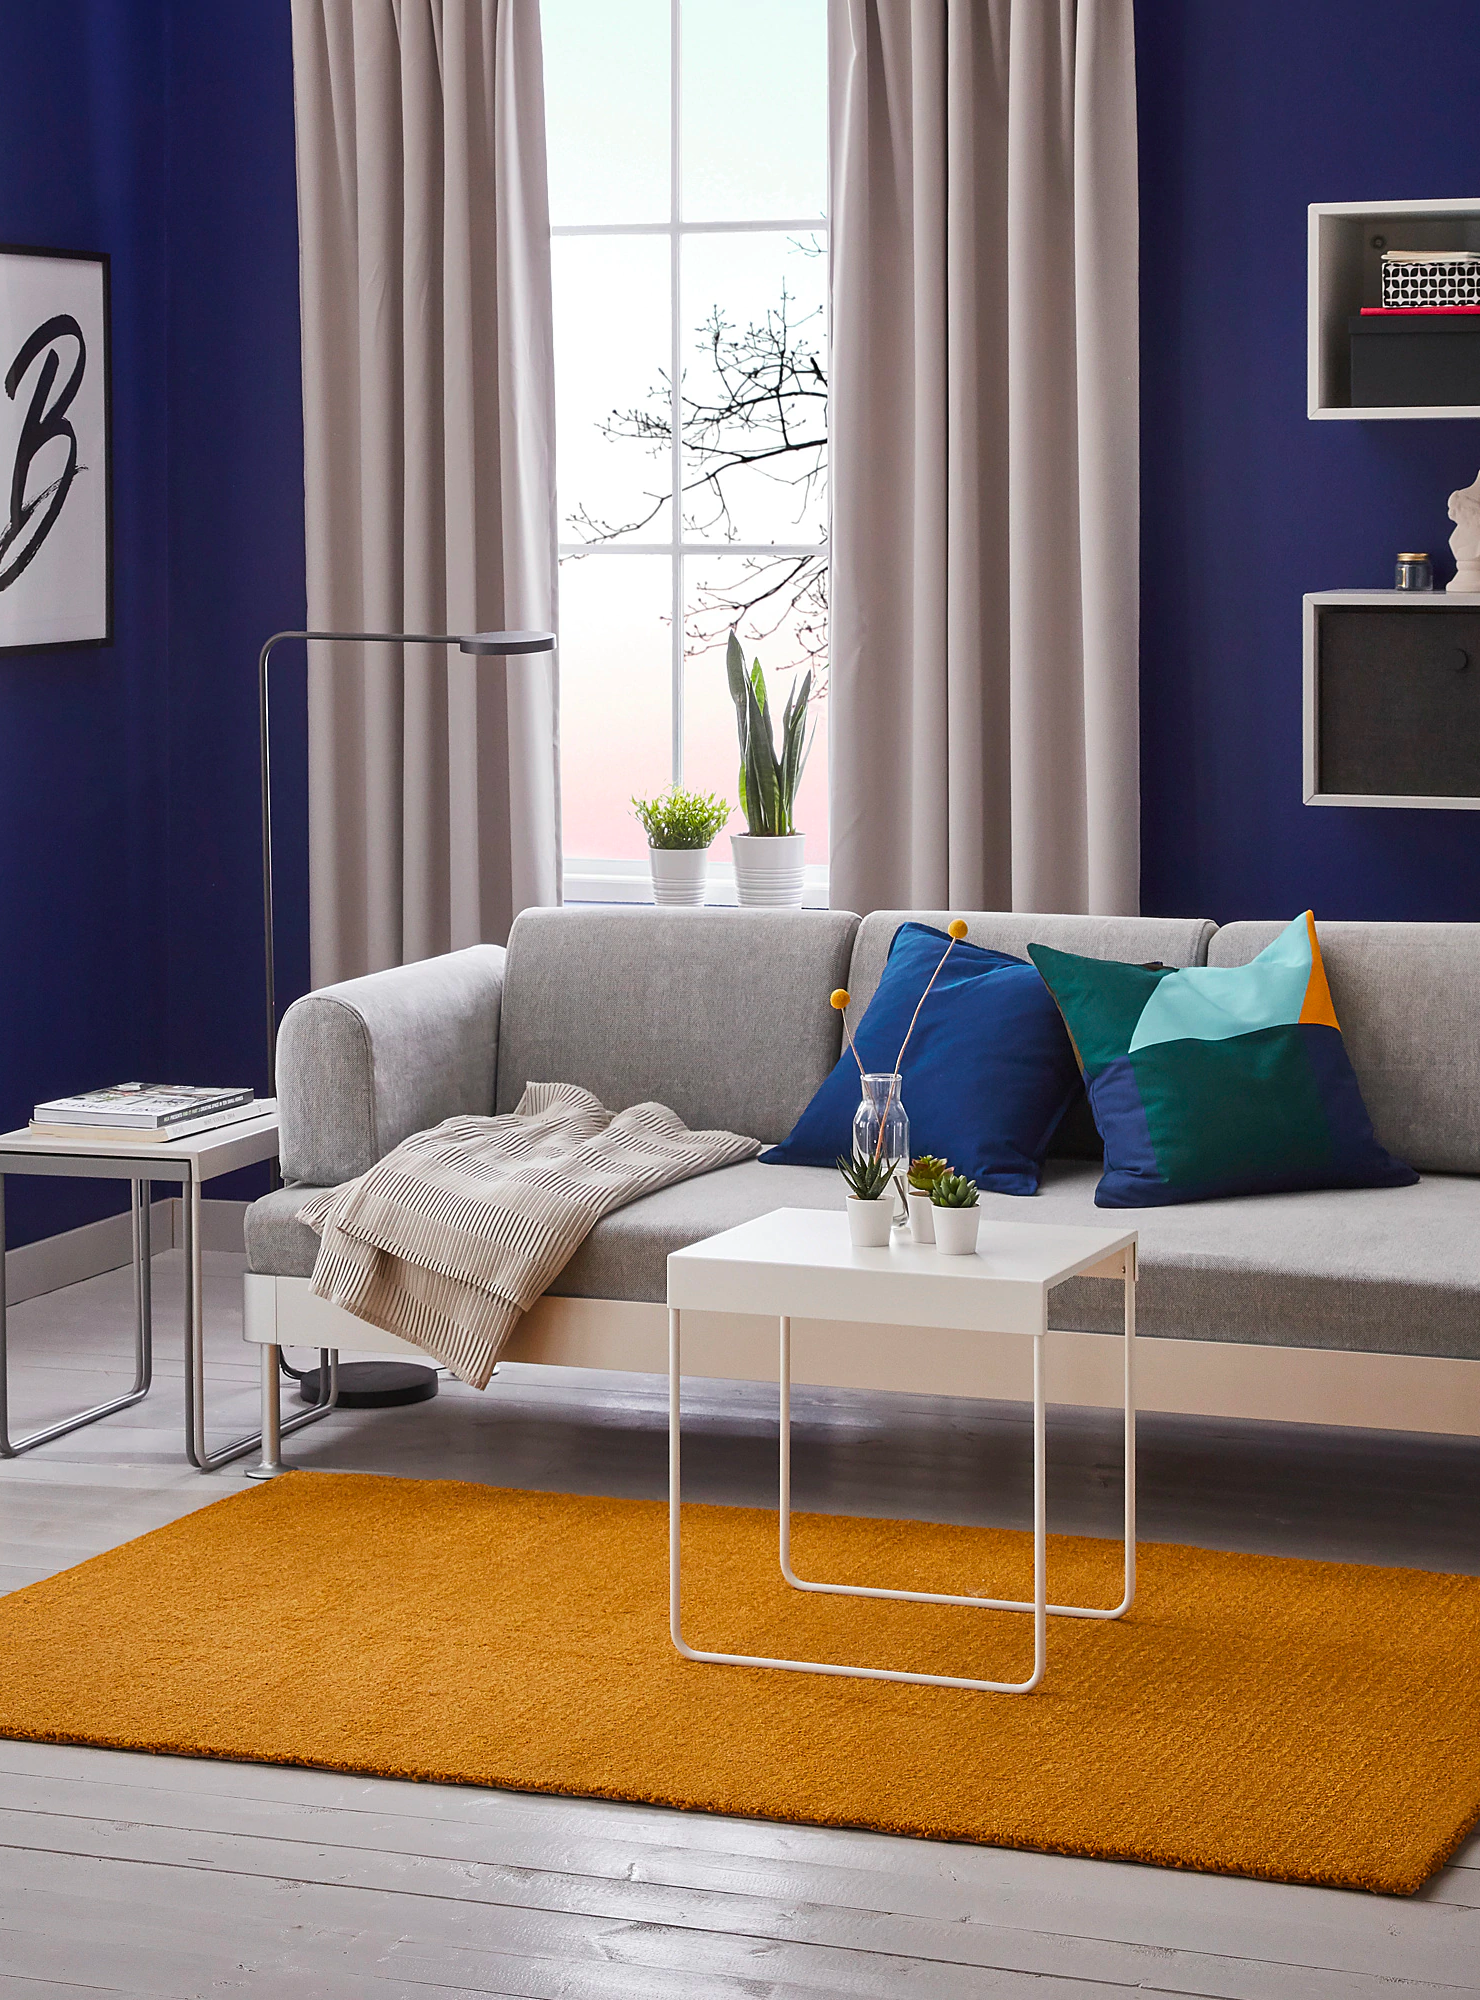 The 14 Most Vibrant Pieces From Ikea's Colorful New ...